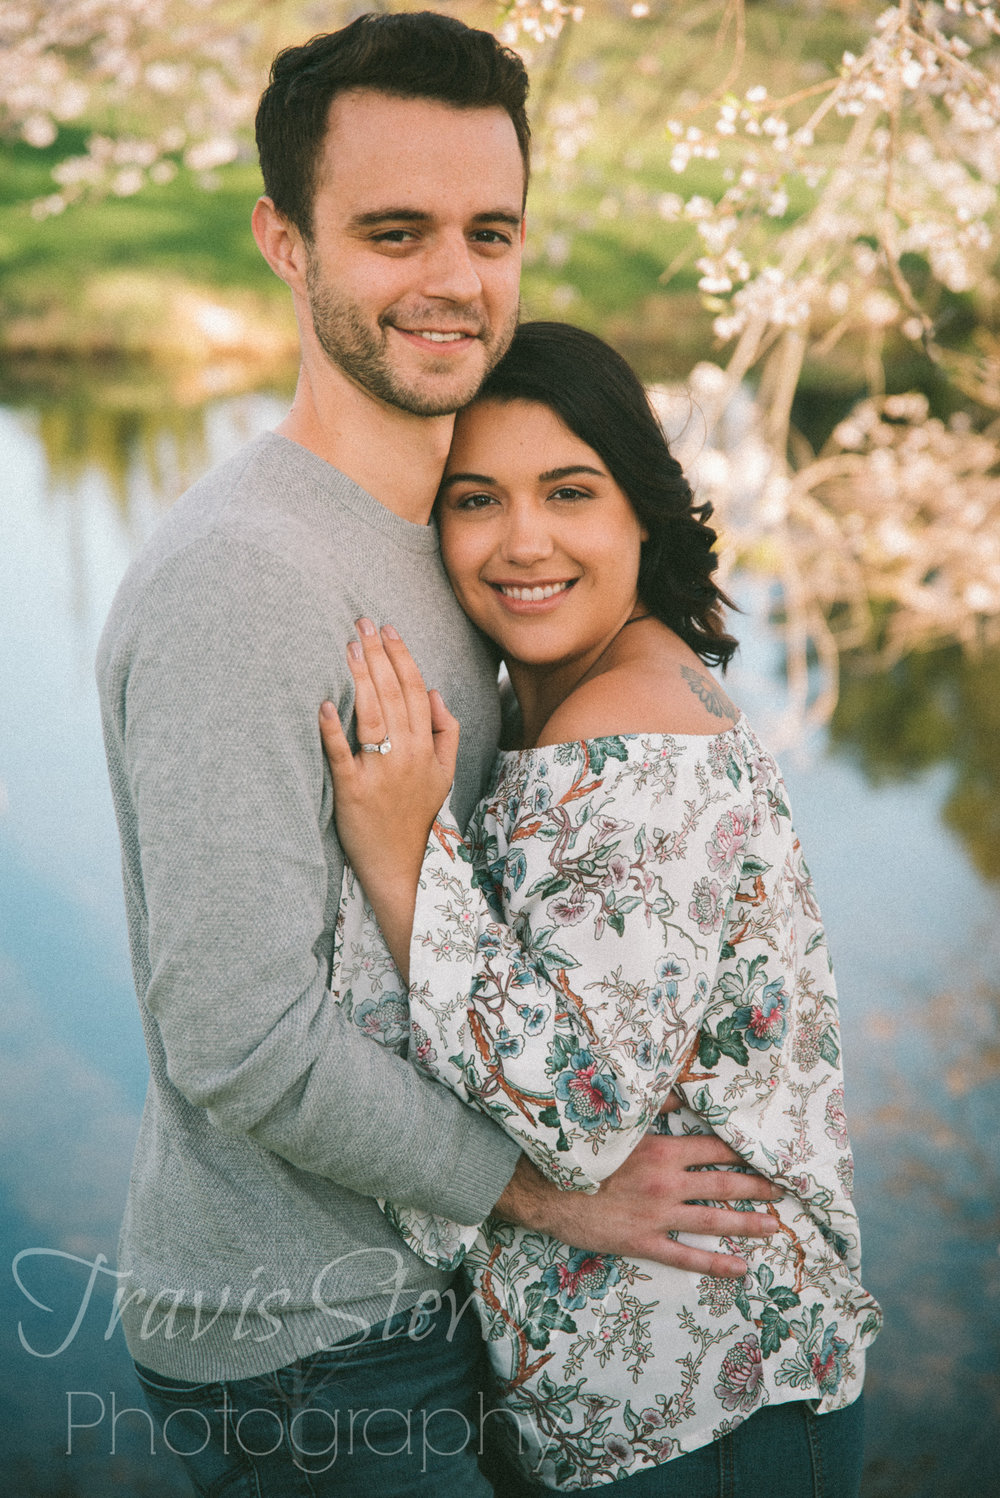 - Shadbush trees are in bloom at Dawes Arboretum - and they make for some gorgeous engagement photos😍